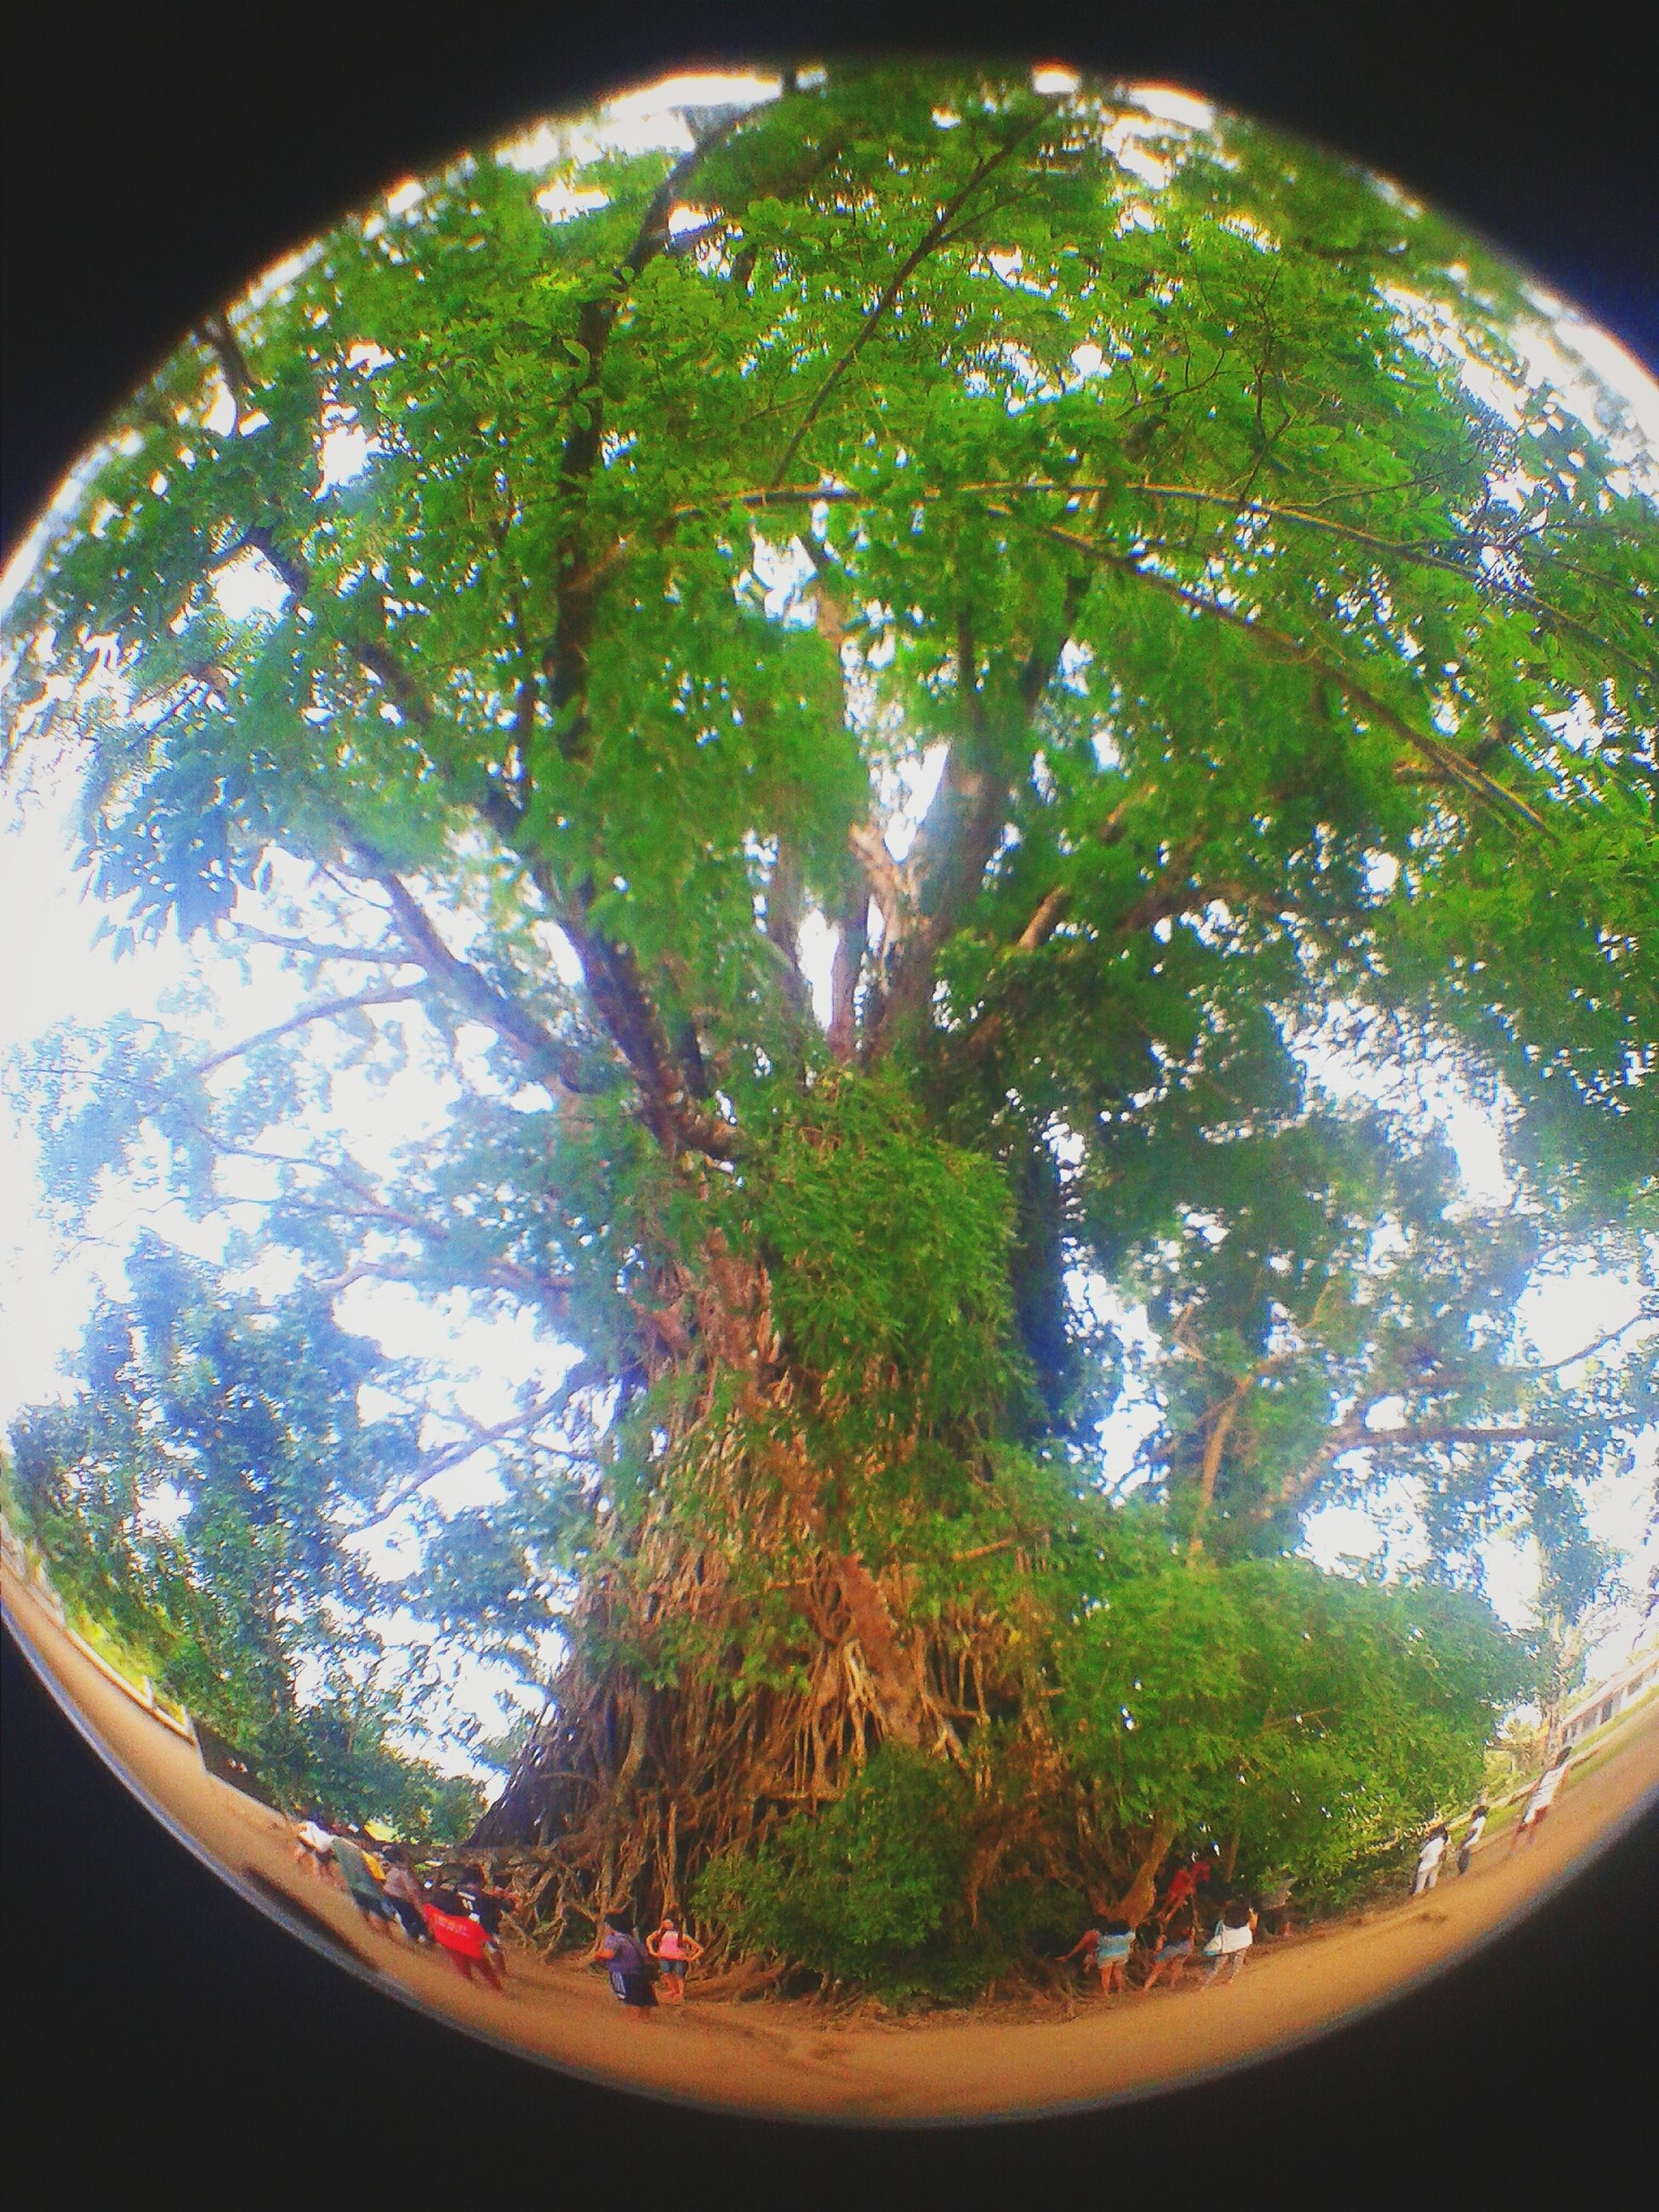 tree, indoors, growth, low angle view, green color, nature, branch, tranquility, no people, lush foliage, fish-eye lens, circle, beauty in nature, day, arch, sky, window, plant, leaf, transparent